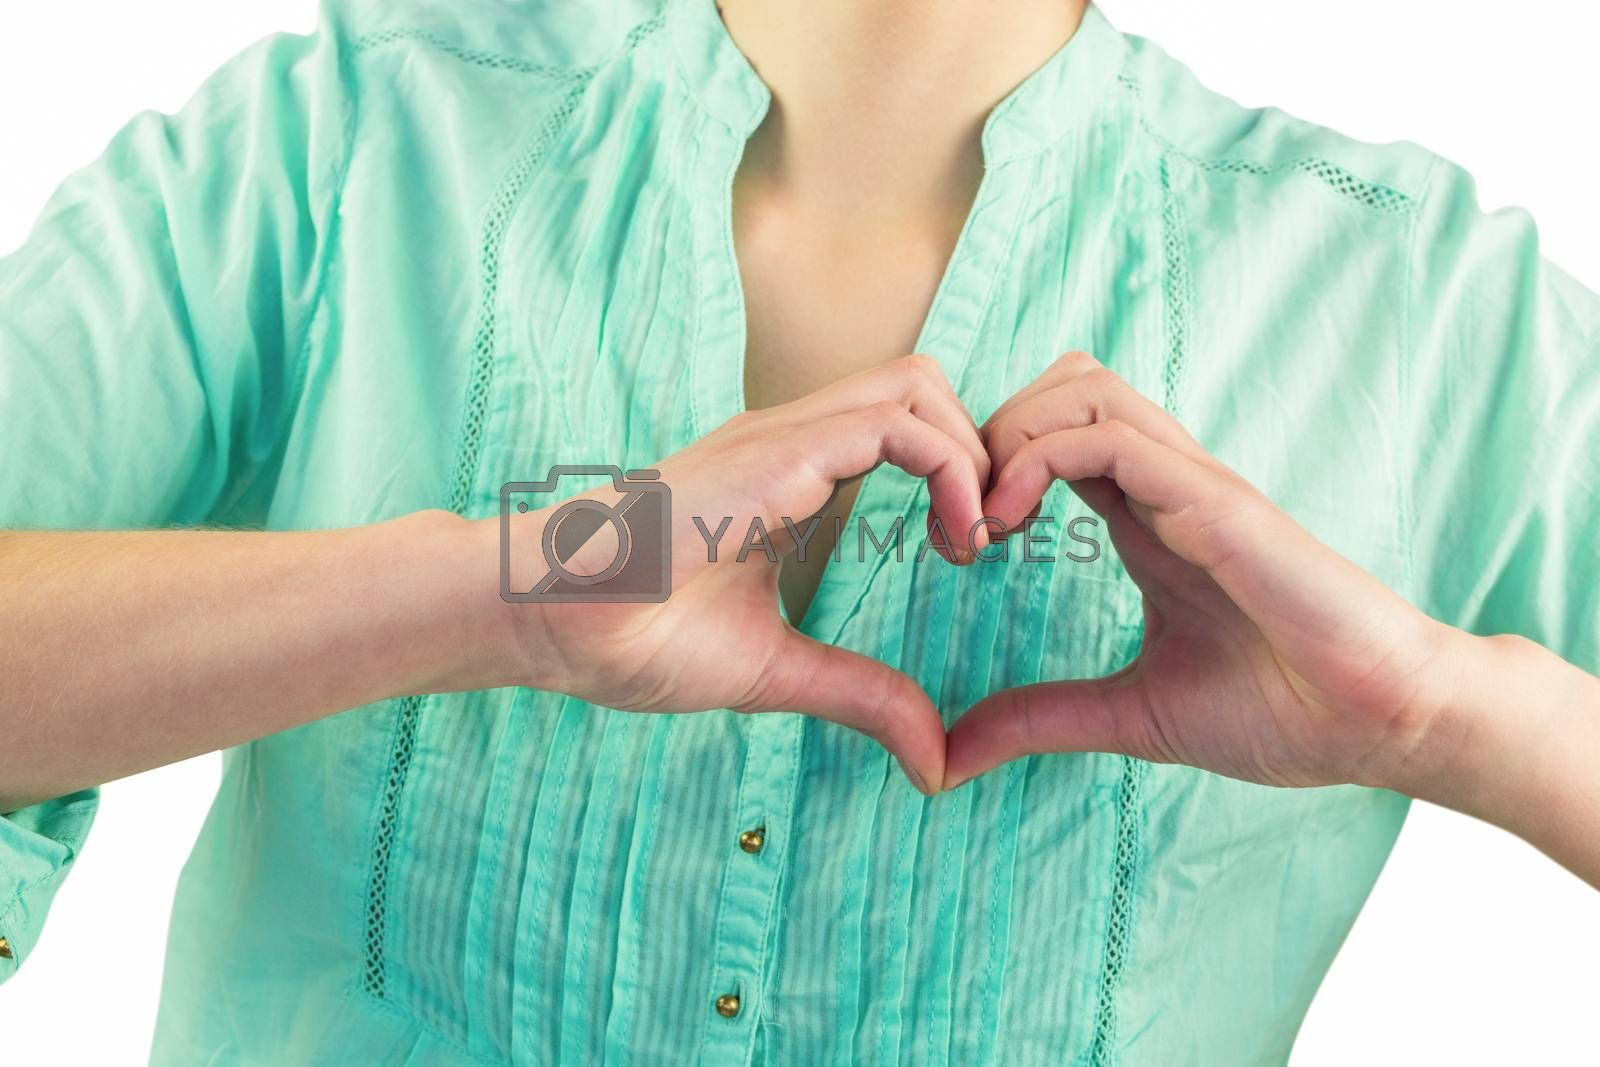 Mid section of woman making heart shape of fingers against white background